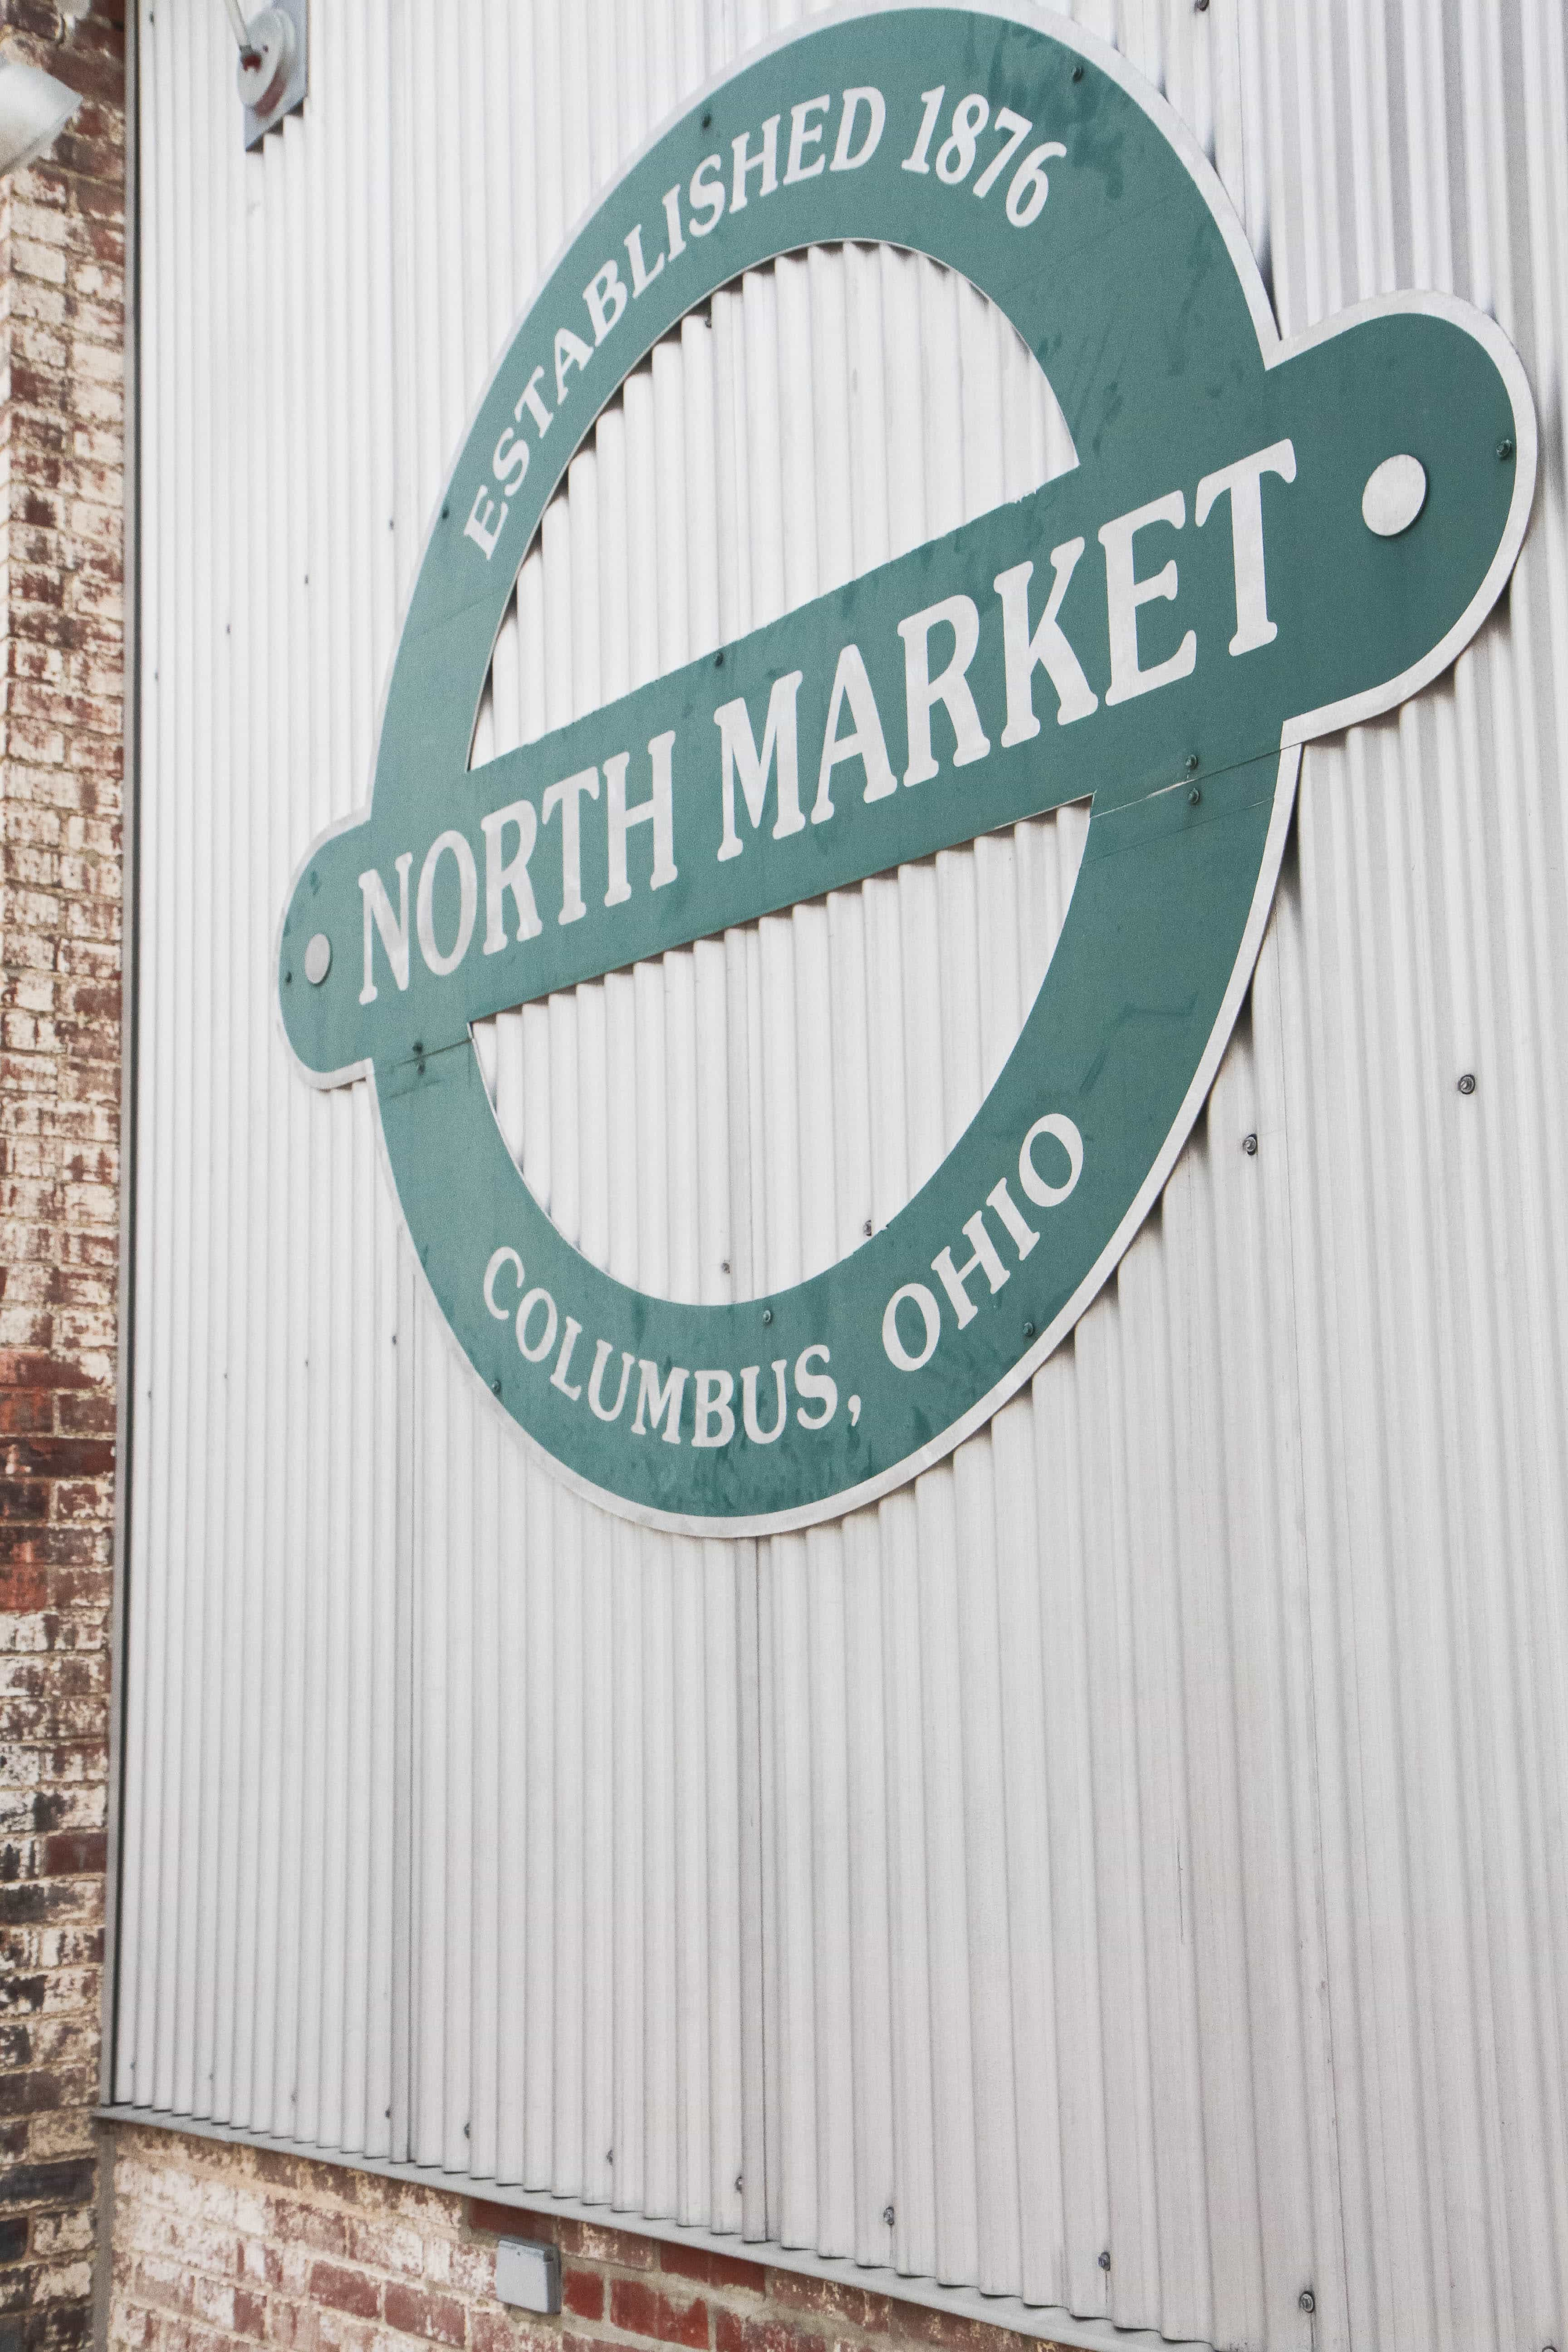 North Market of Columbus, Ohio